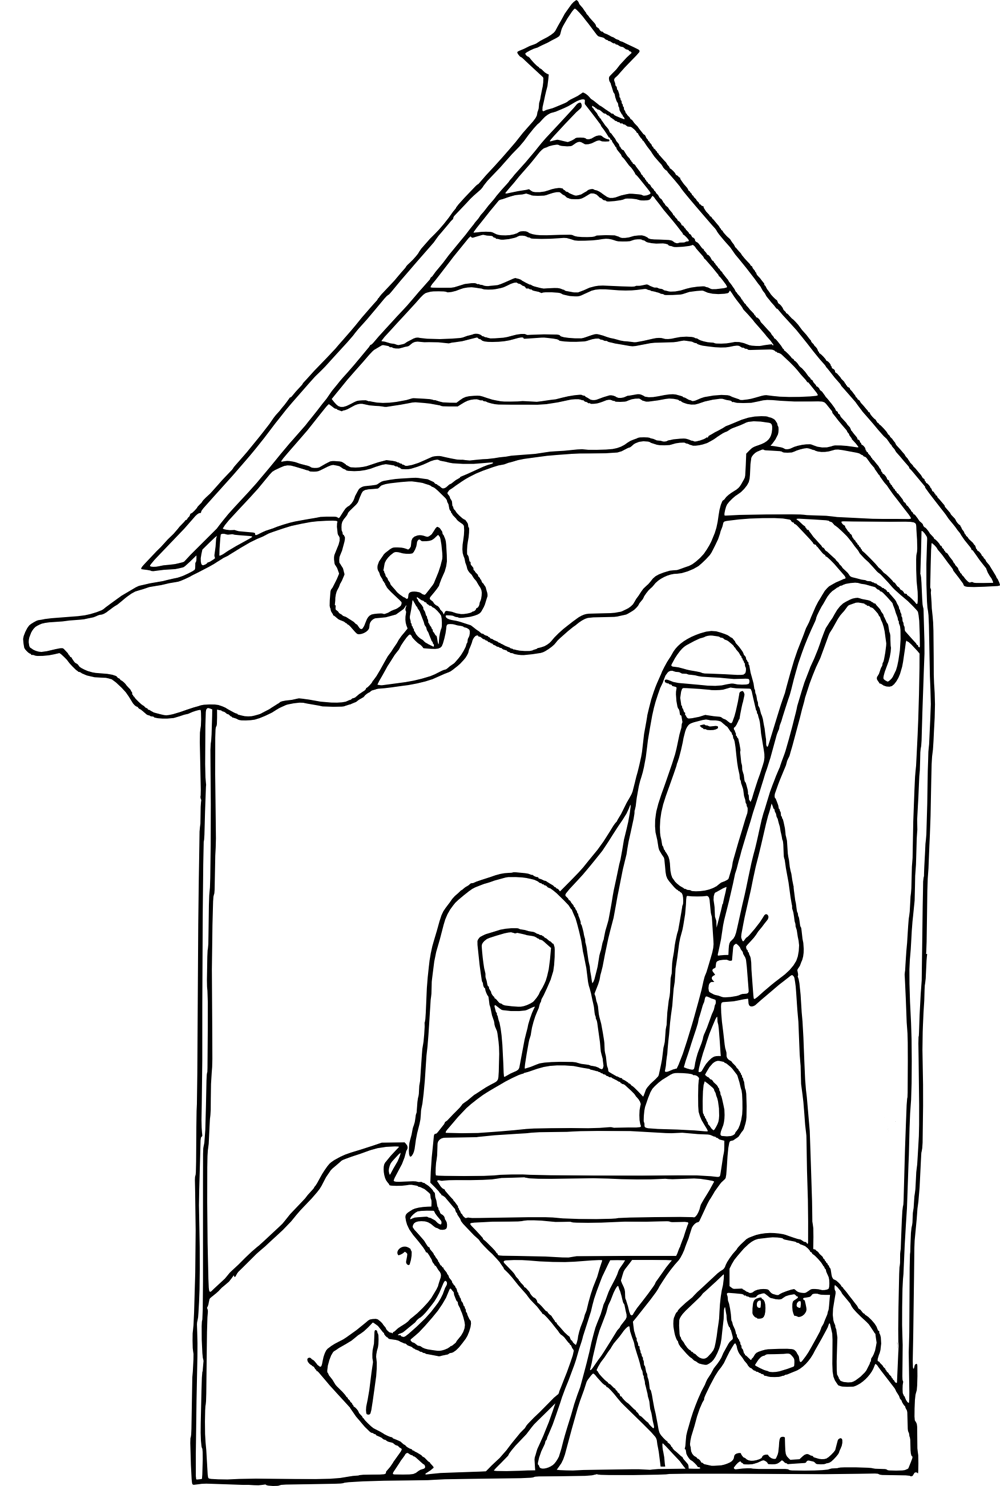 baby jesus pictures to color 2011 11 13 free christian wallpapers pictures jesus baby to color